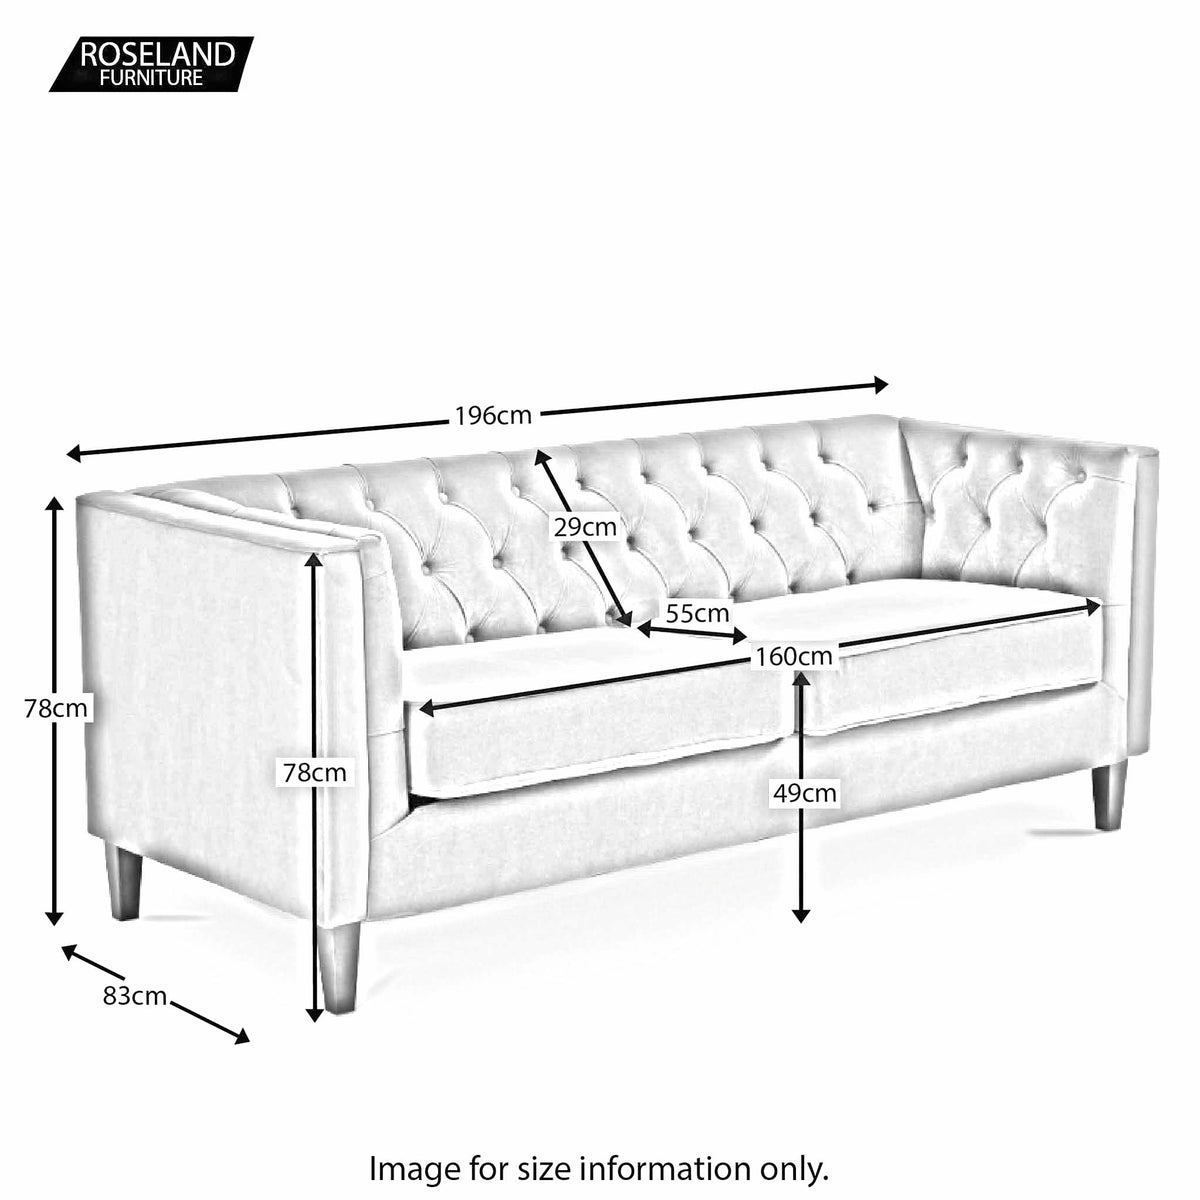 Eliza Heather 3 Seater Chesterfield Sofa - Size guide